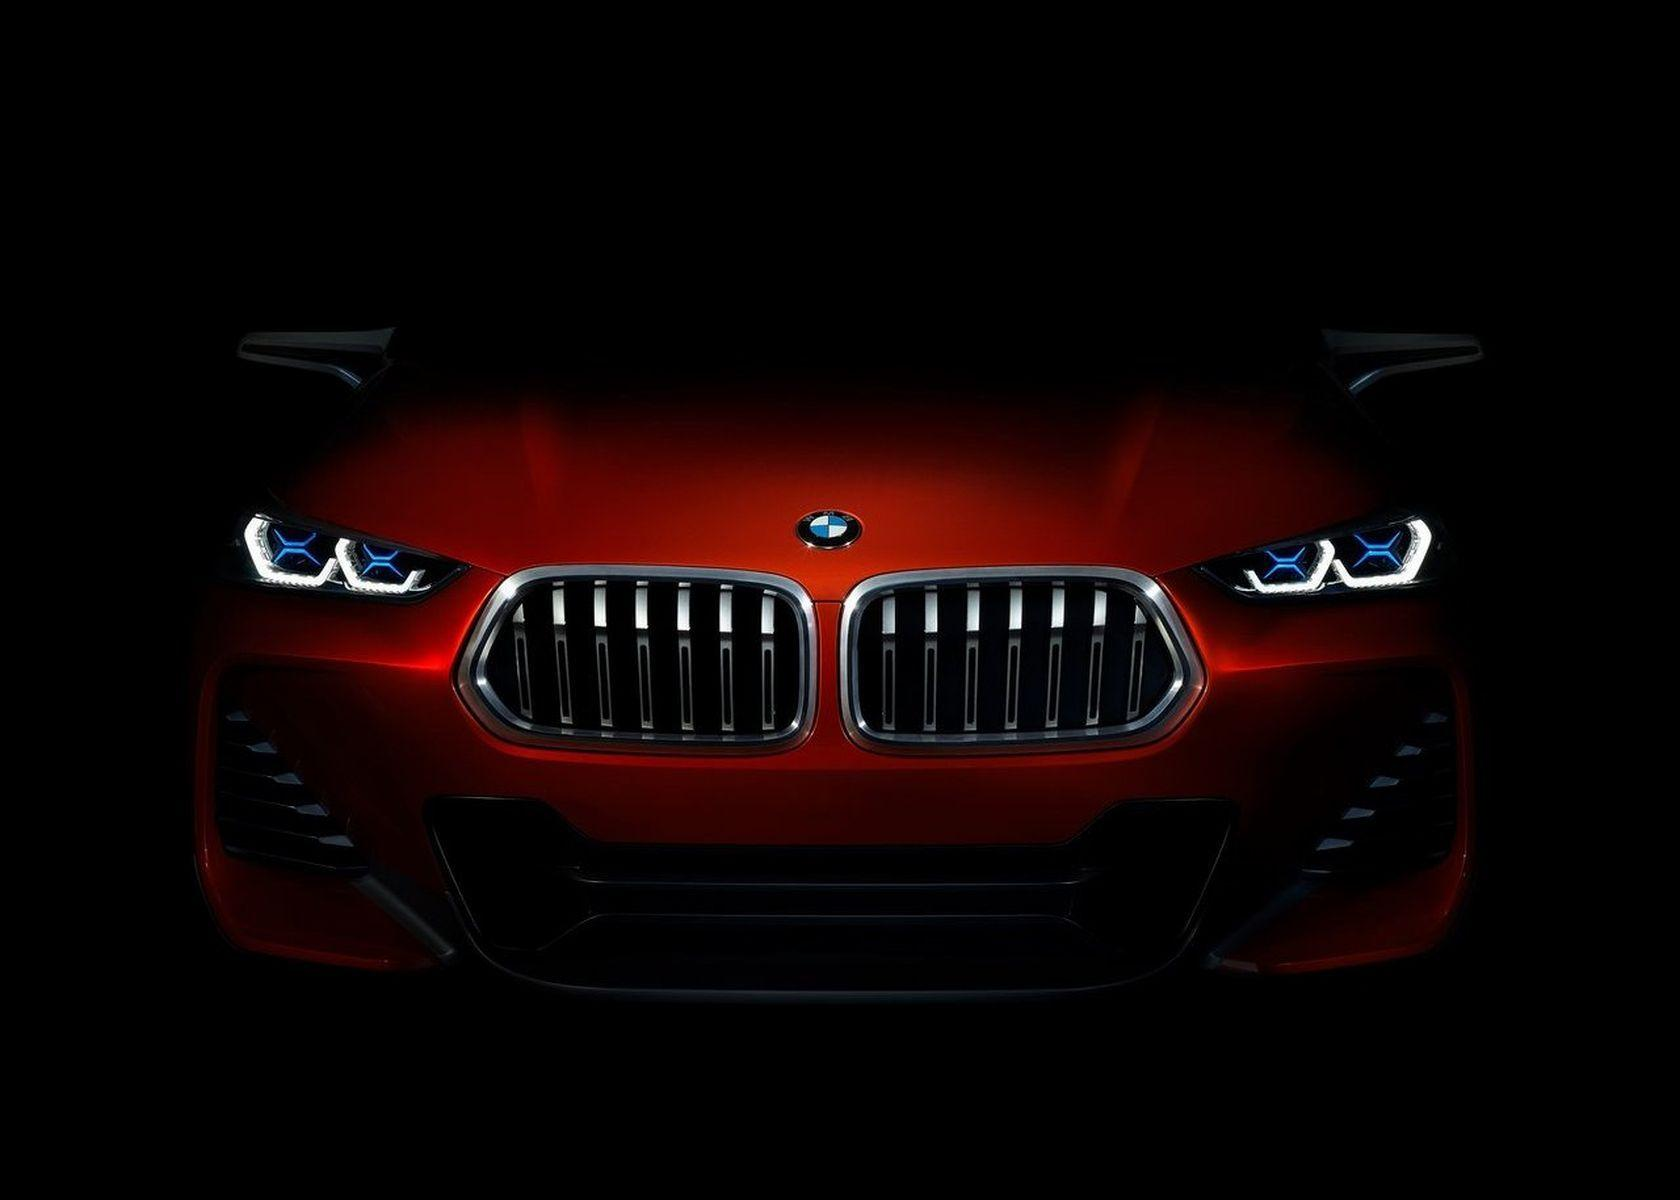 2018 BMW X2 Wallpapers 4K Resolutions